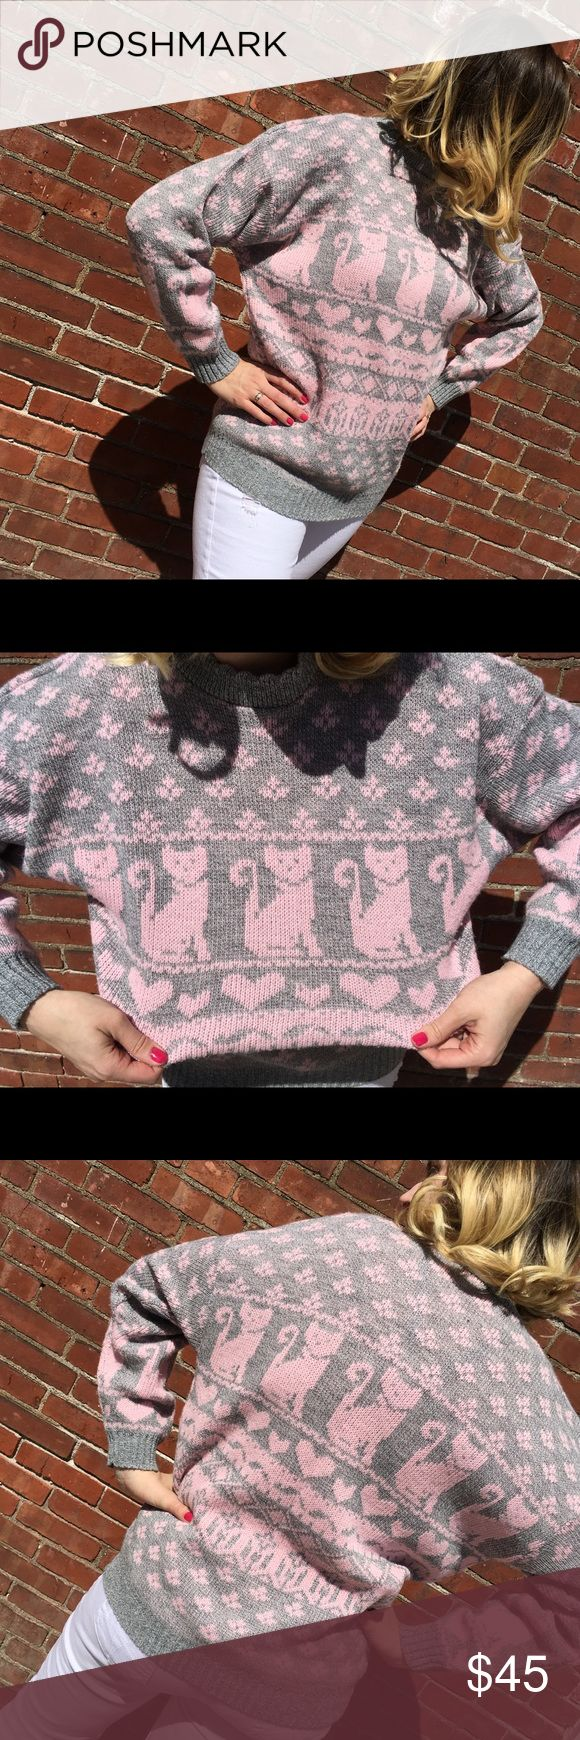 1980s Vintage Kitty Kat Sweater 🐱 How adorable. I love this cute comfy sweater with the perfect kitty Kat print ;) it may be worn oversized and is vintage flawless. Love. Serious inquires please comment below and I'll take measurements for you 🐱 listing as oversized as large to xtra small can wear this with different styles and looks. Vintage Sweaters Crew & Scoop Necks